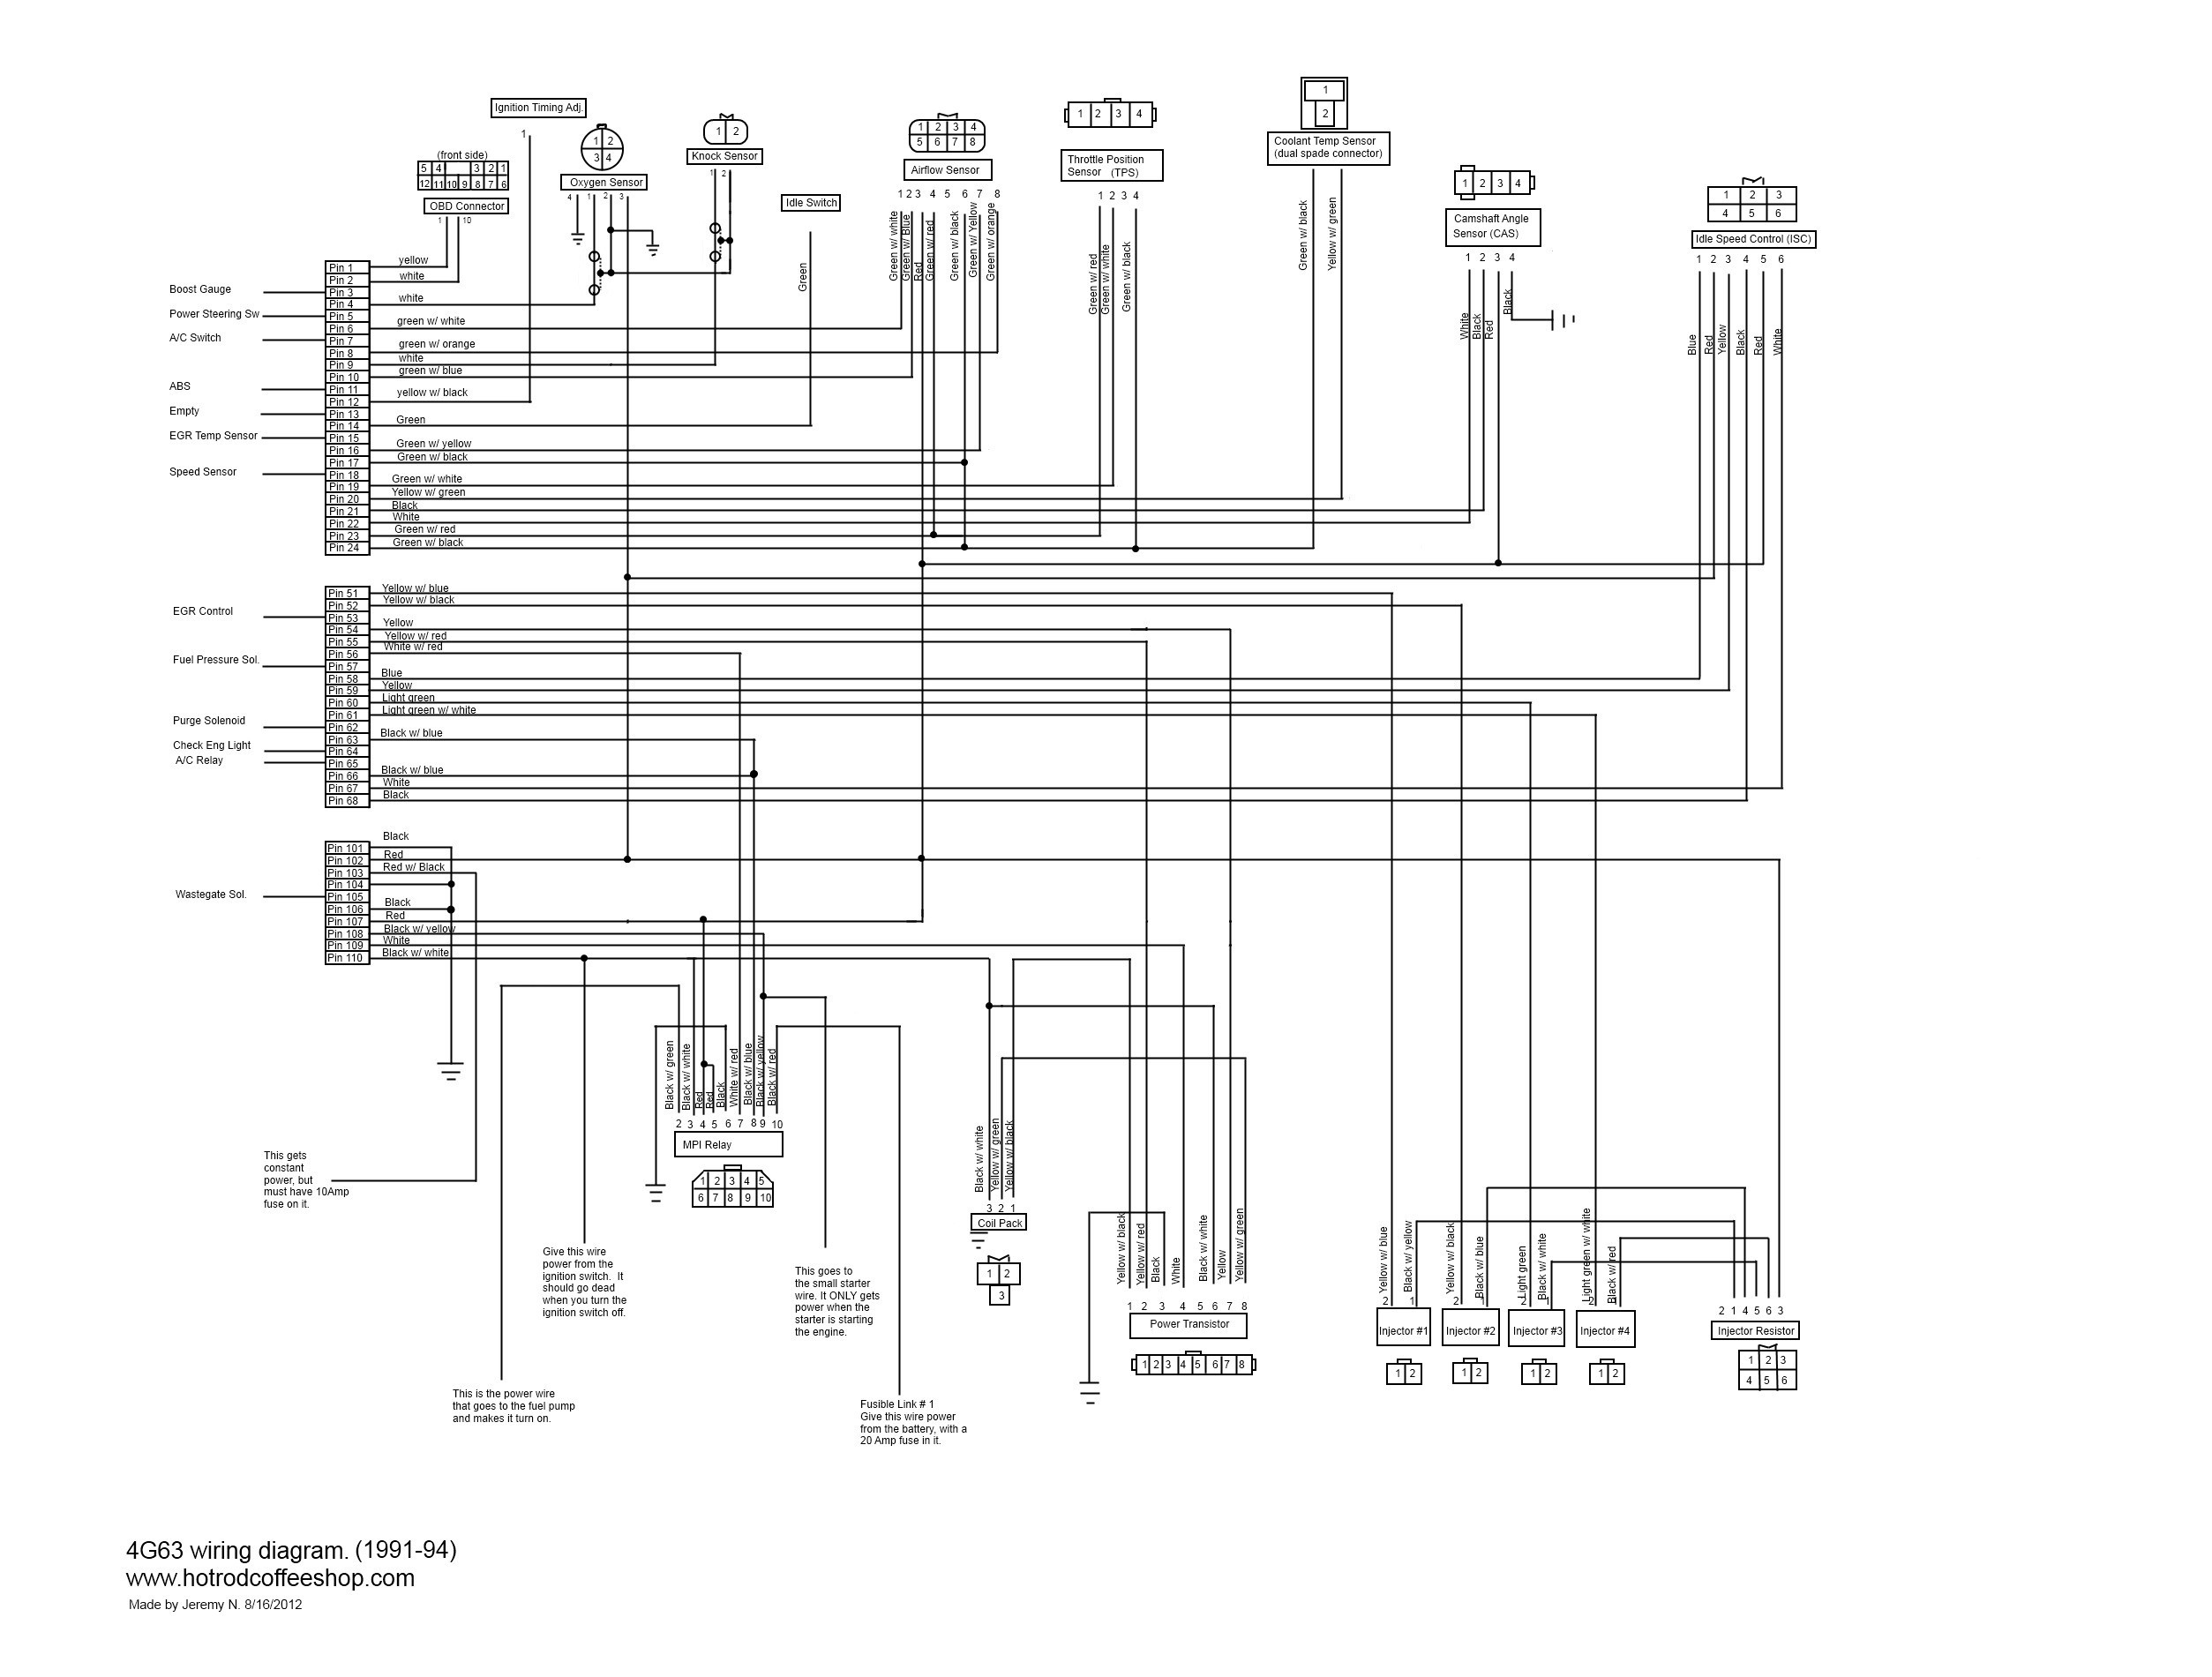 Wiring Diagram For 2002 Mitsubishi Lancer